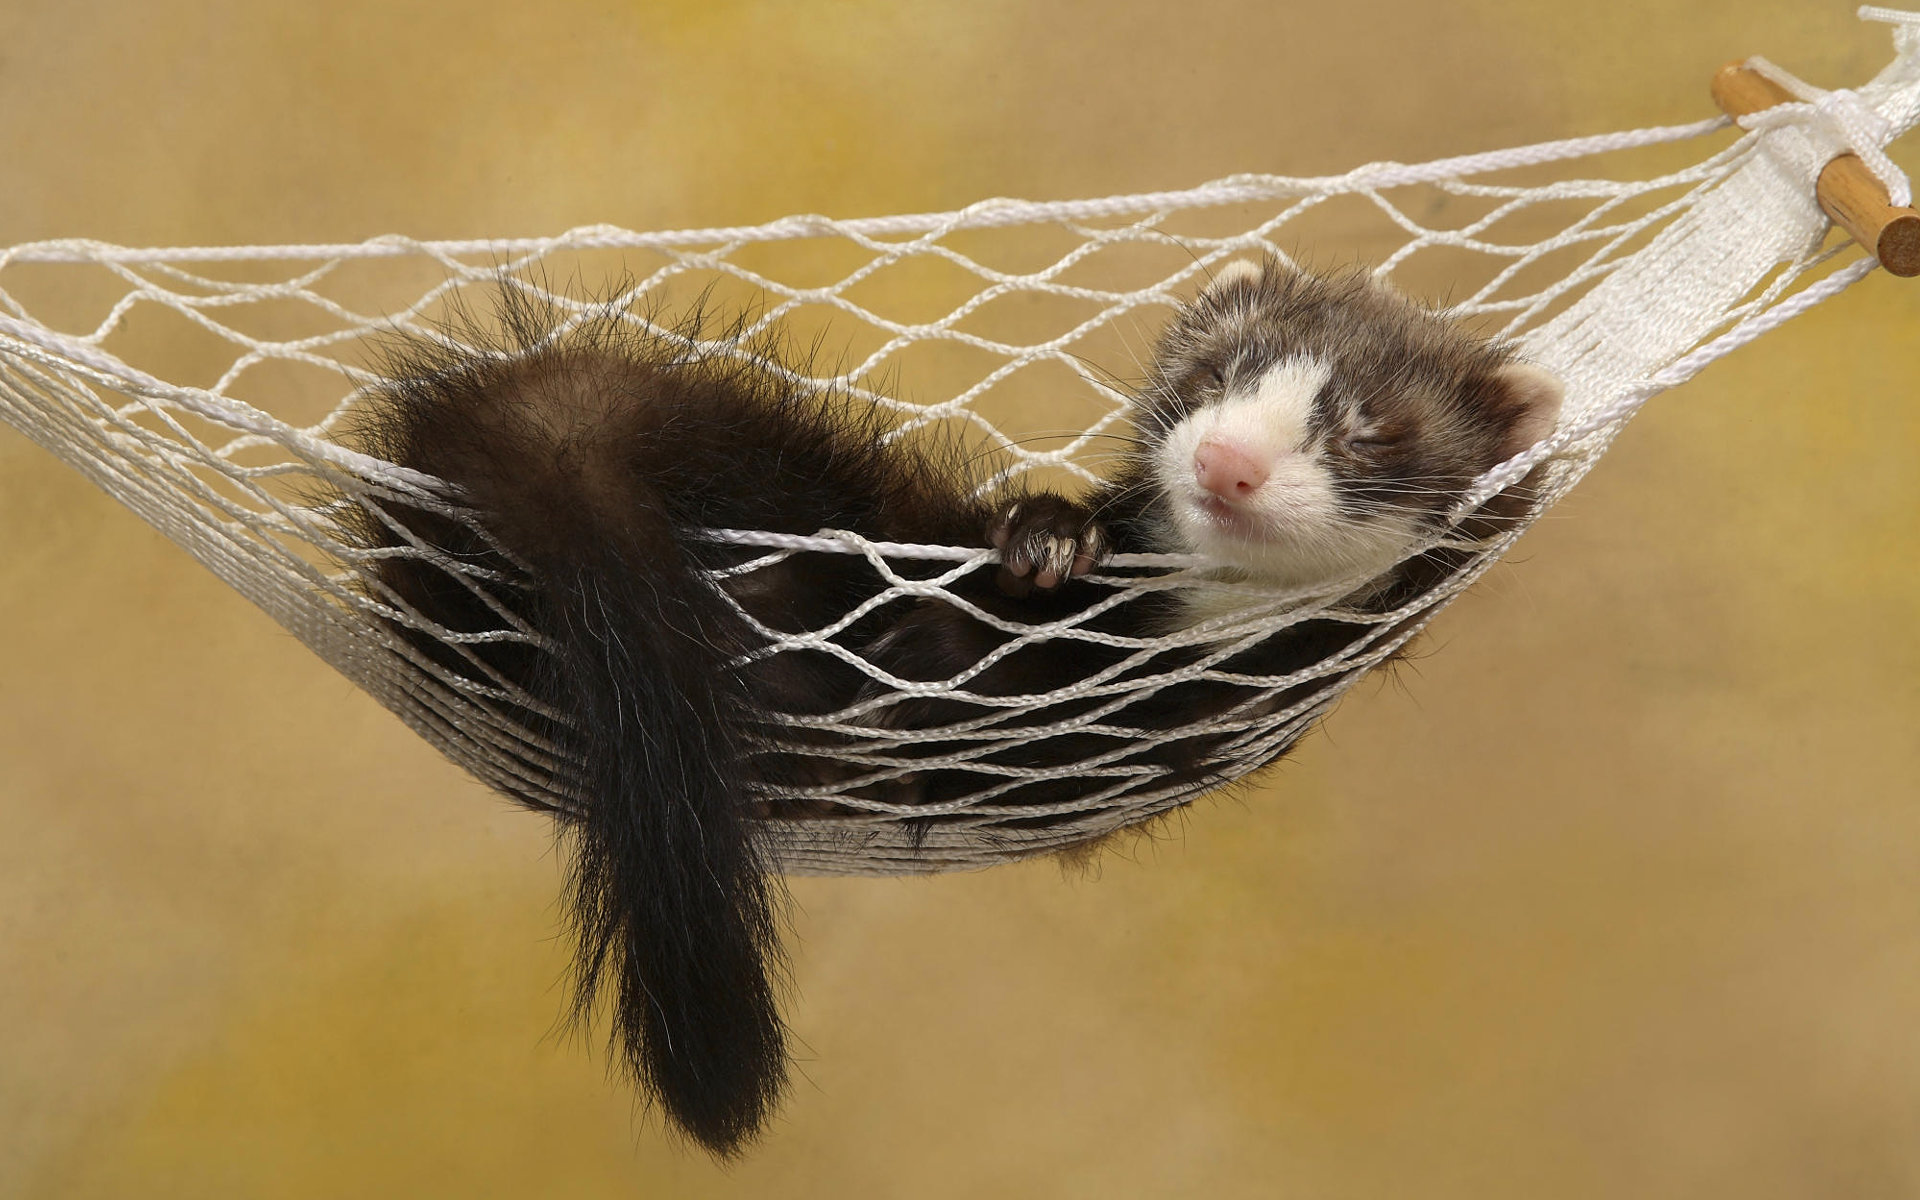 Awesome Ferret free wallpaper ID:165817 for hd 1920x1200 desktop